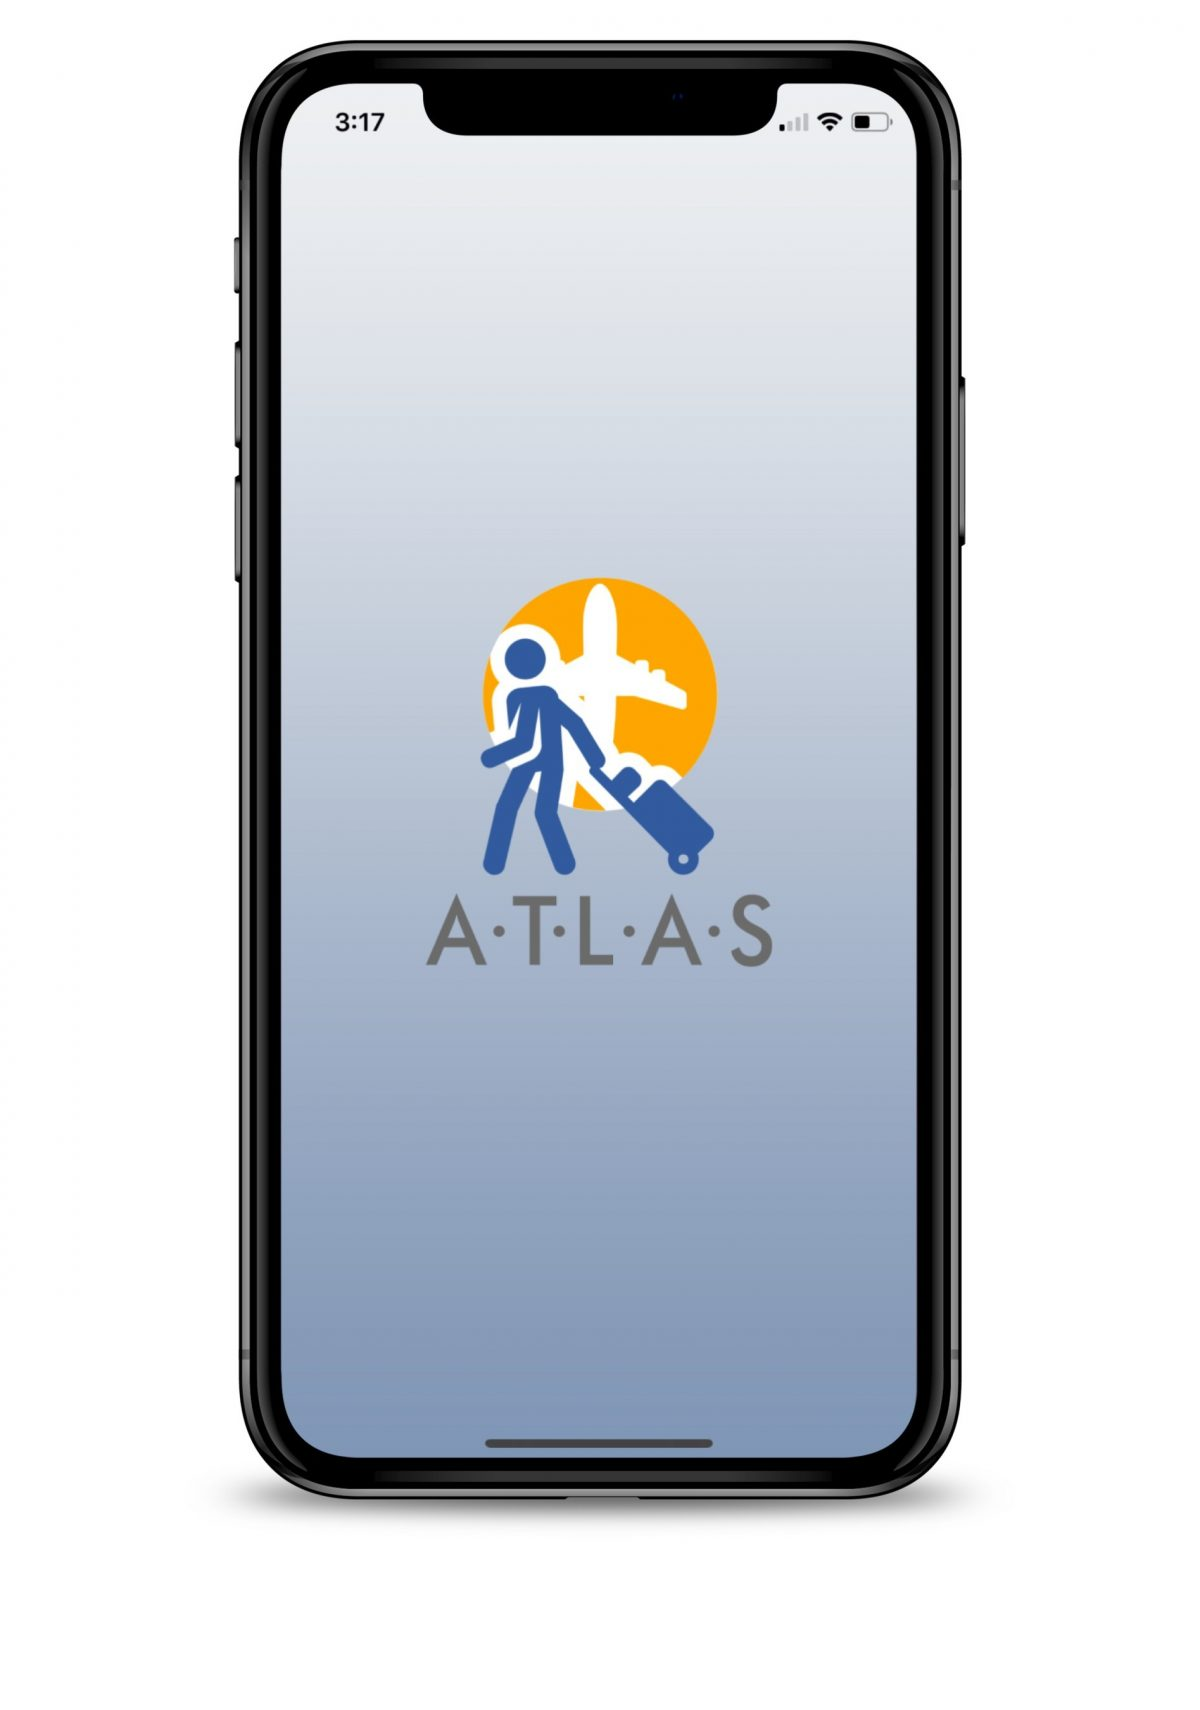 A.T.L.A.S available at iOS and Google Play Store